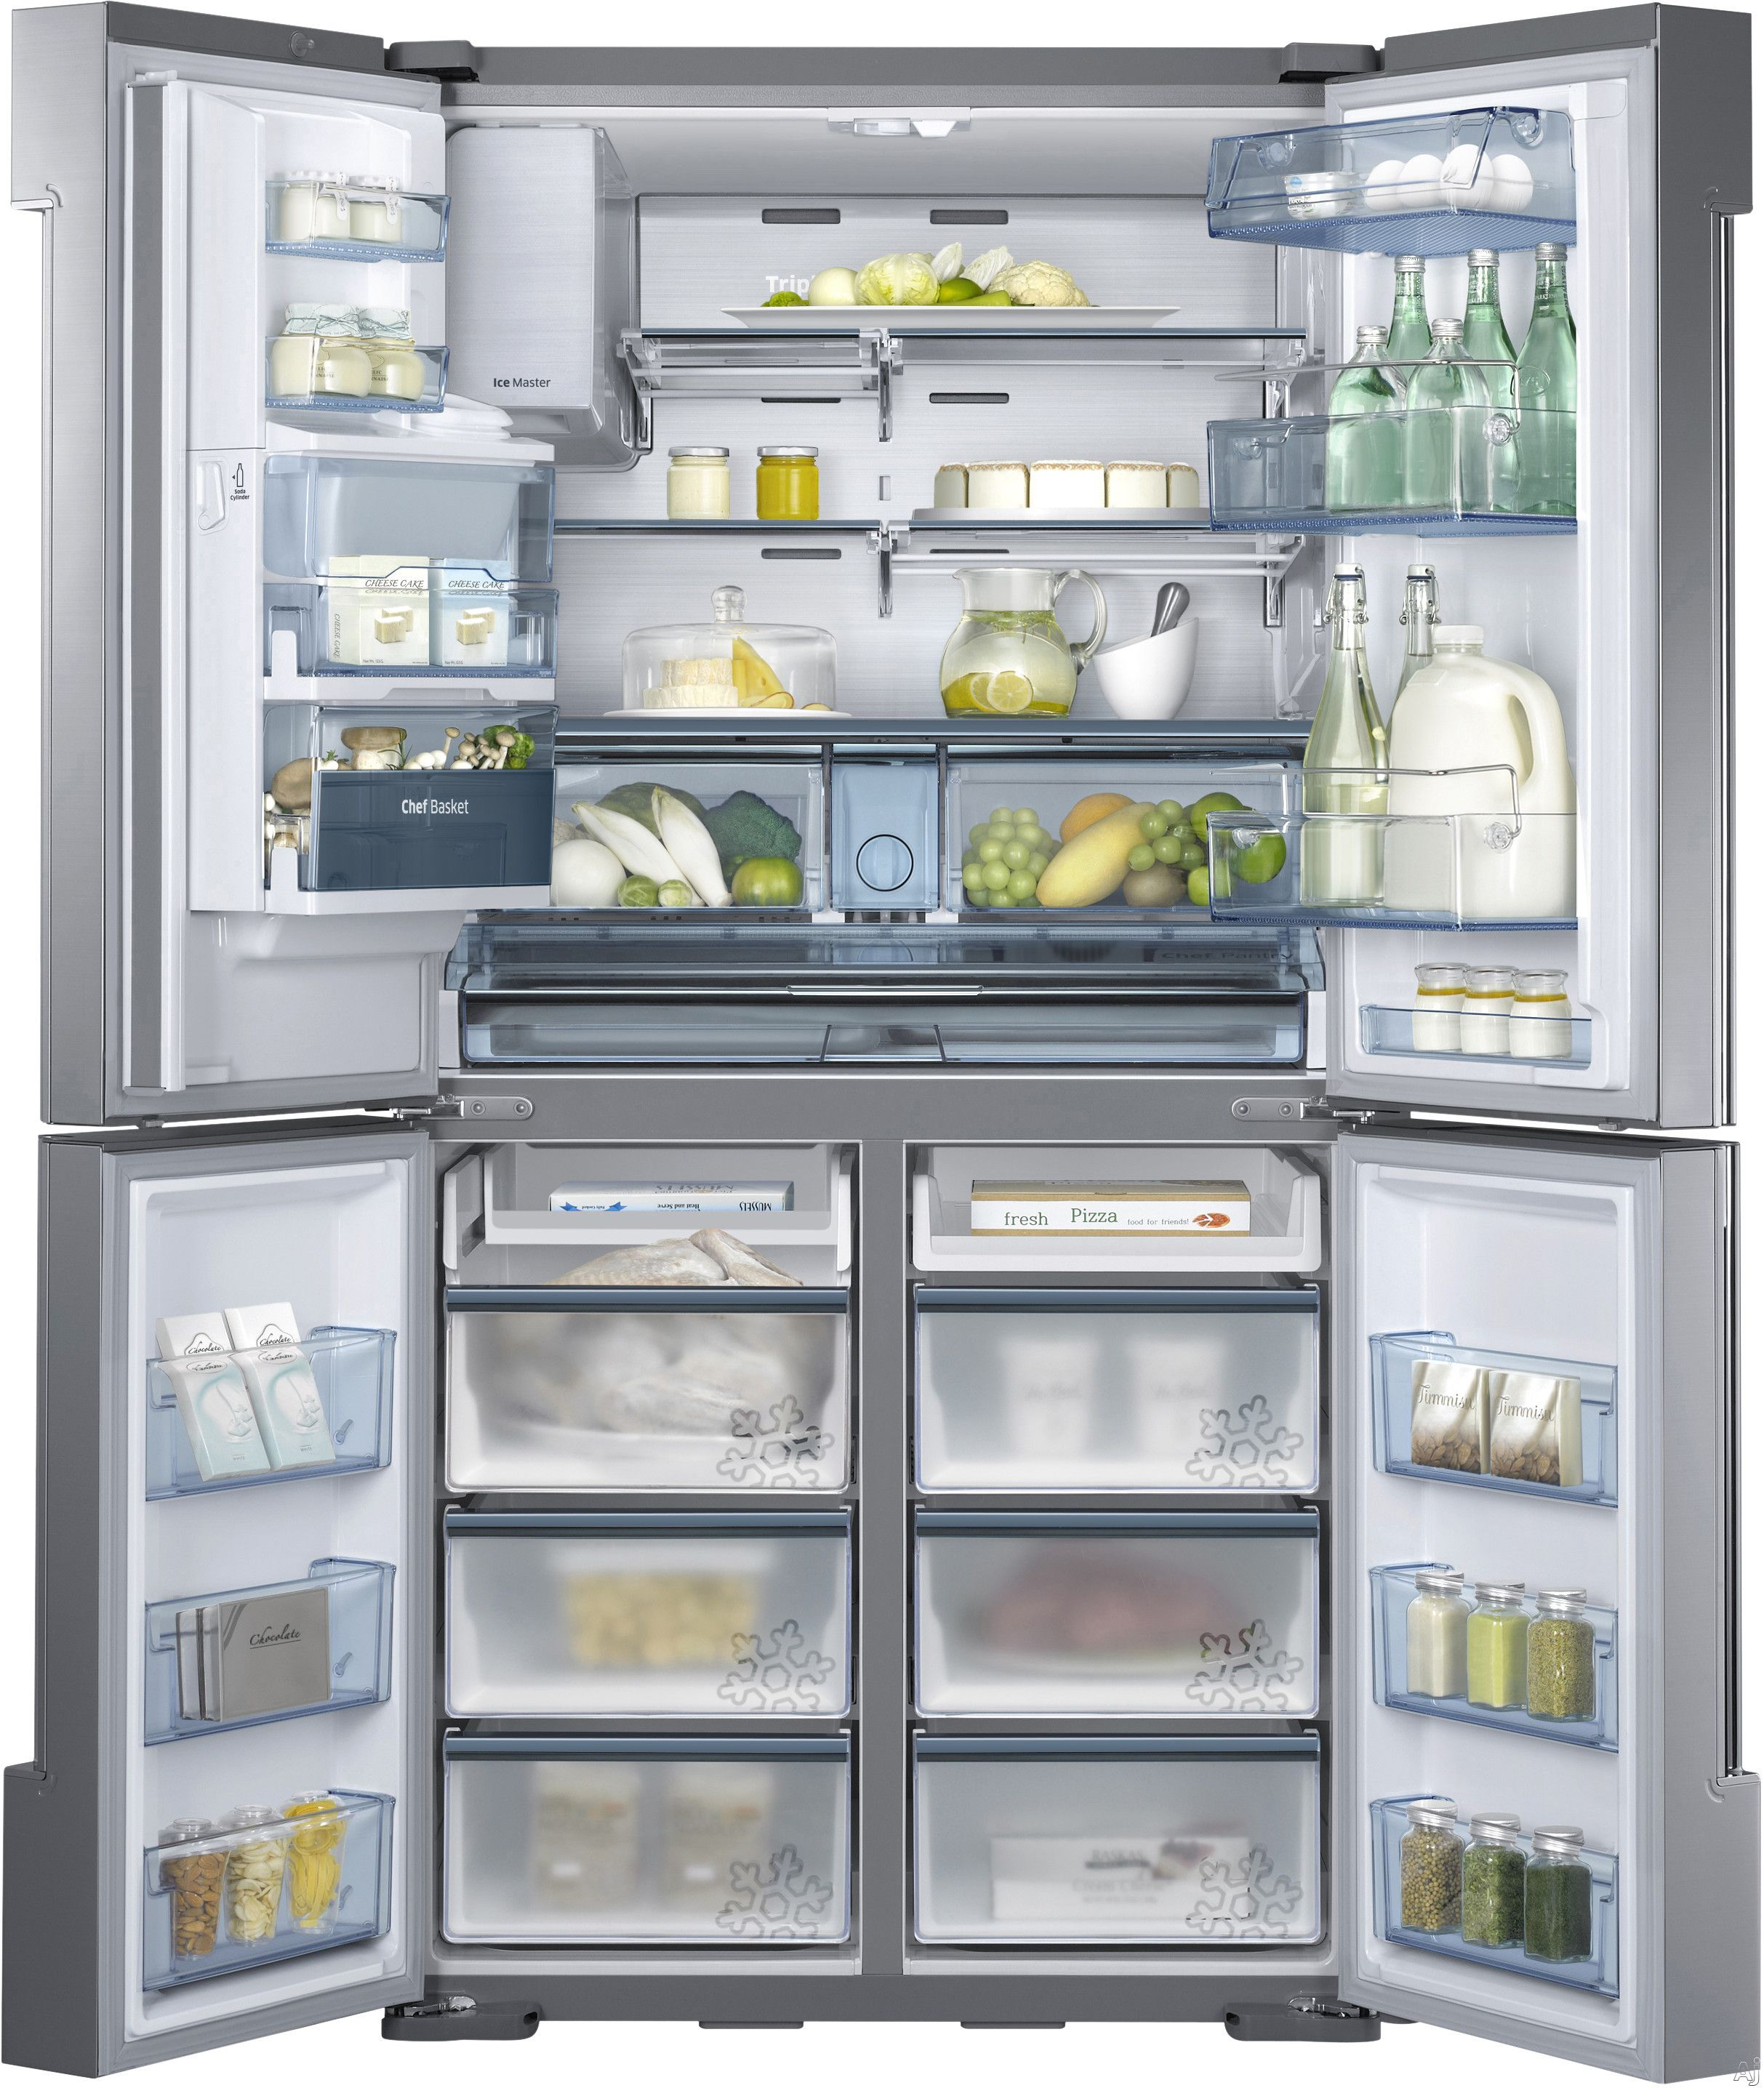 Samsung Rf34h9960s4 34 3 Cu Ft French Door Refrigerator With 5